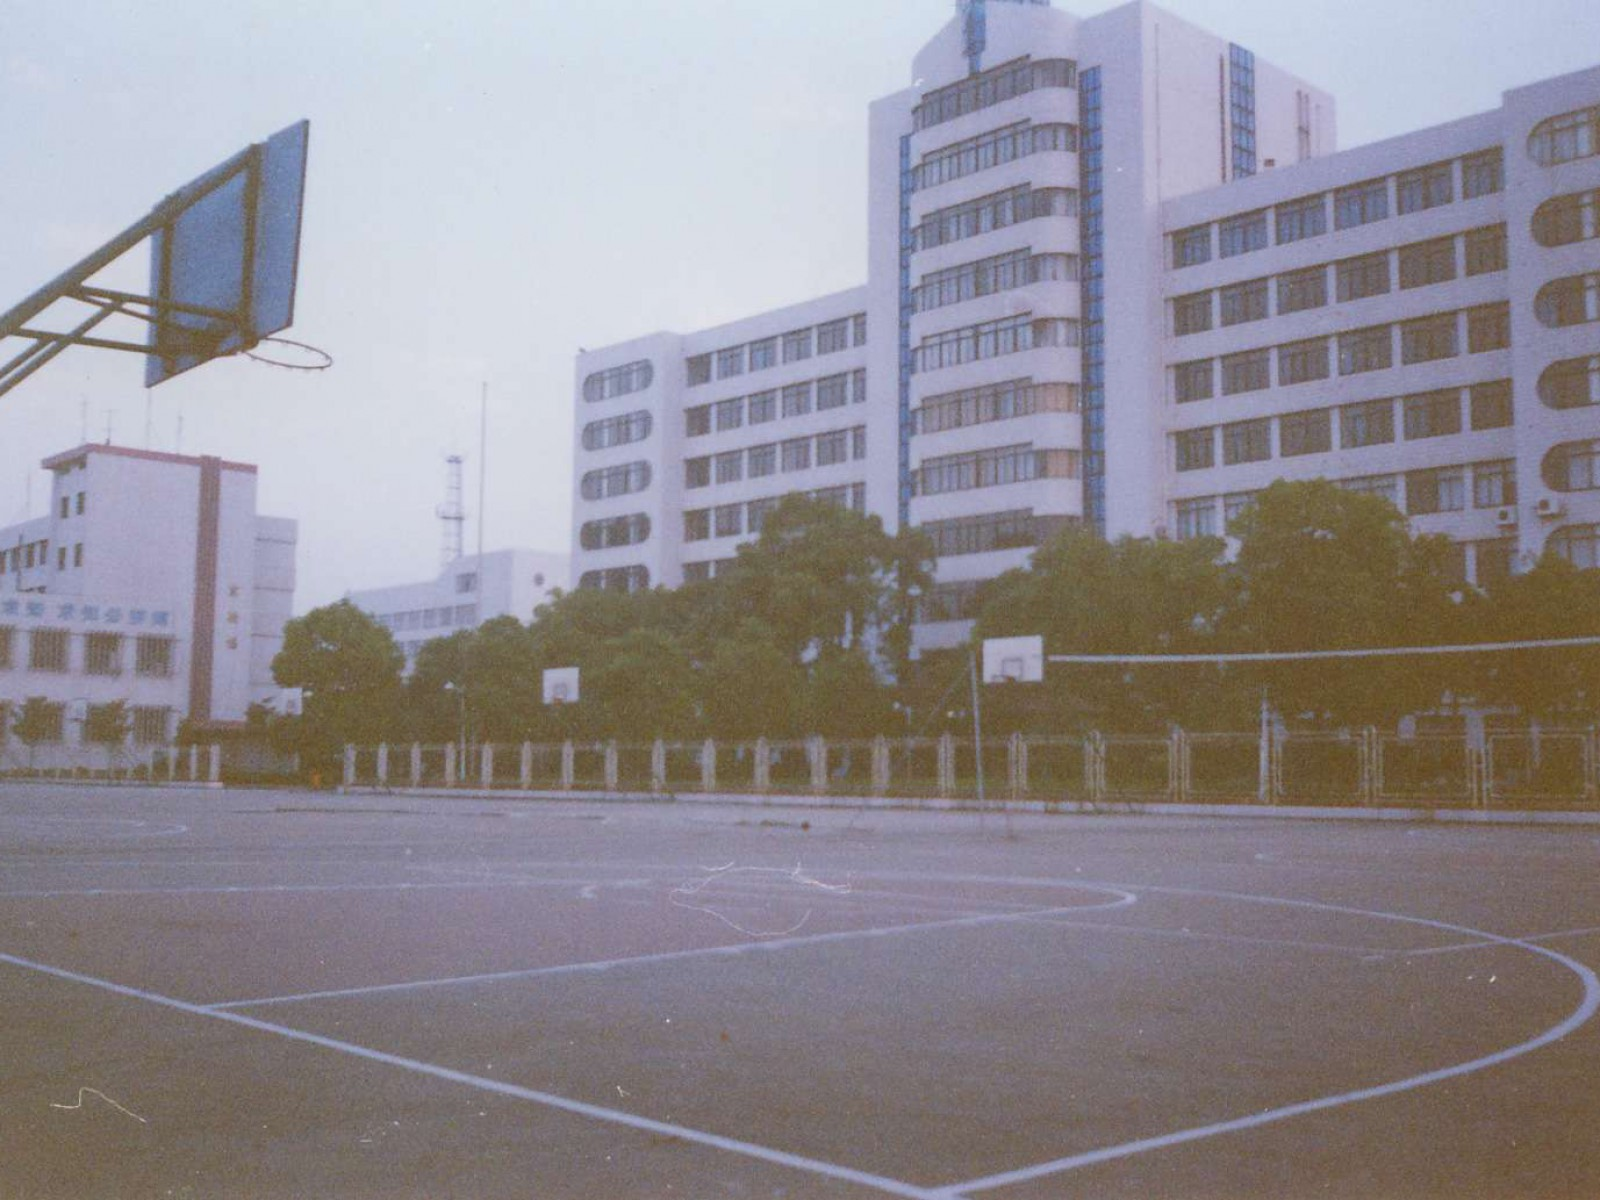 University of Science and Technology, Changsha, China